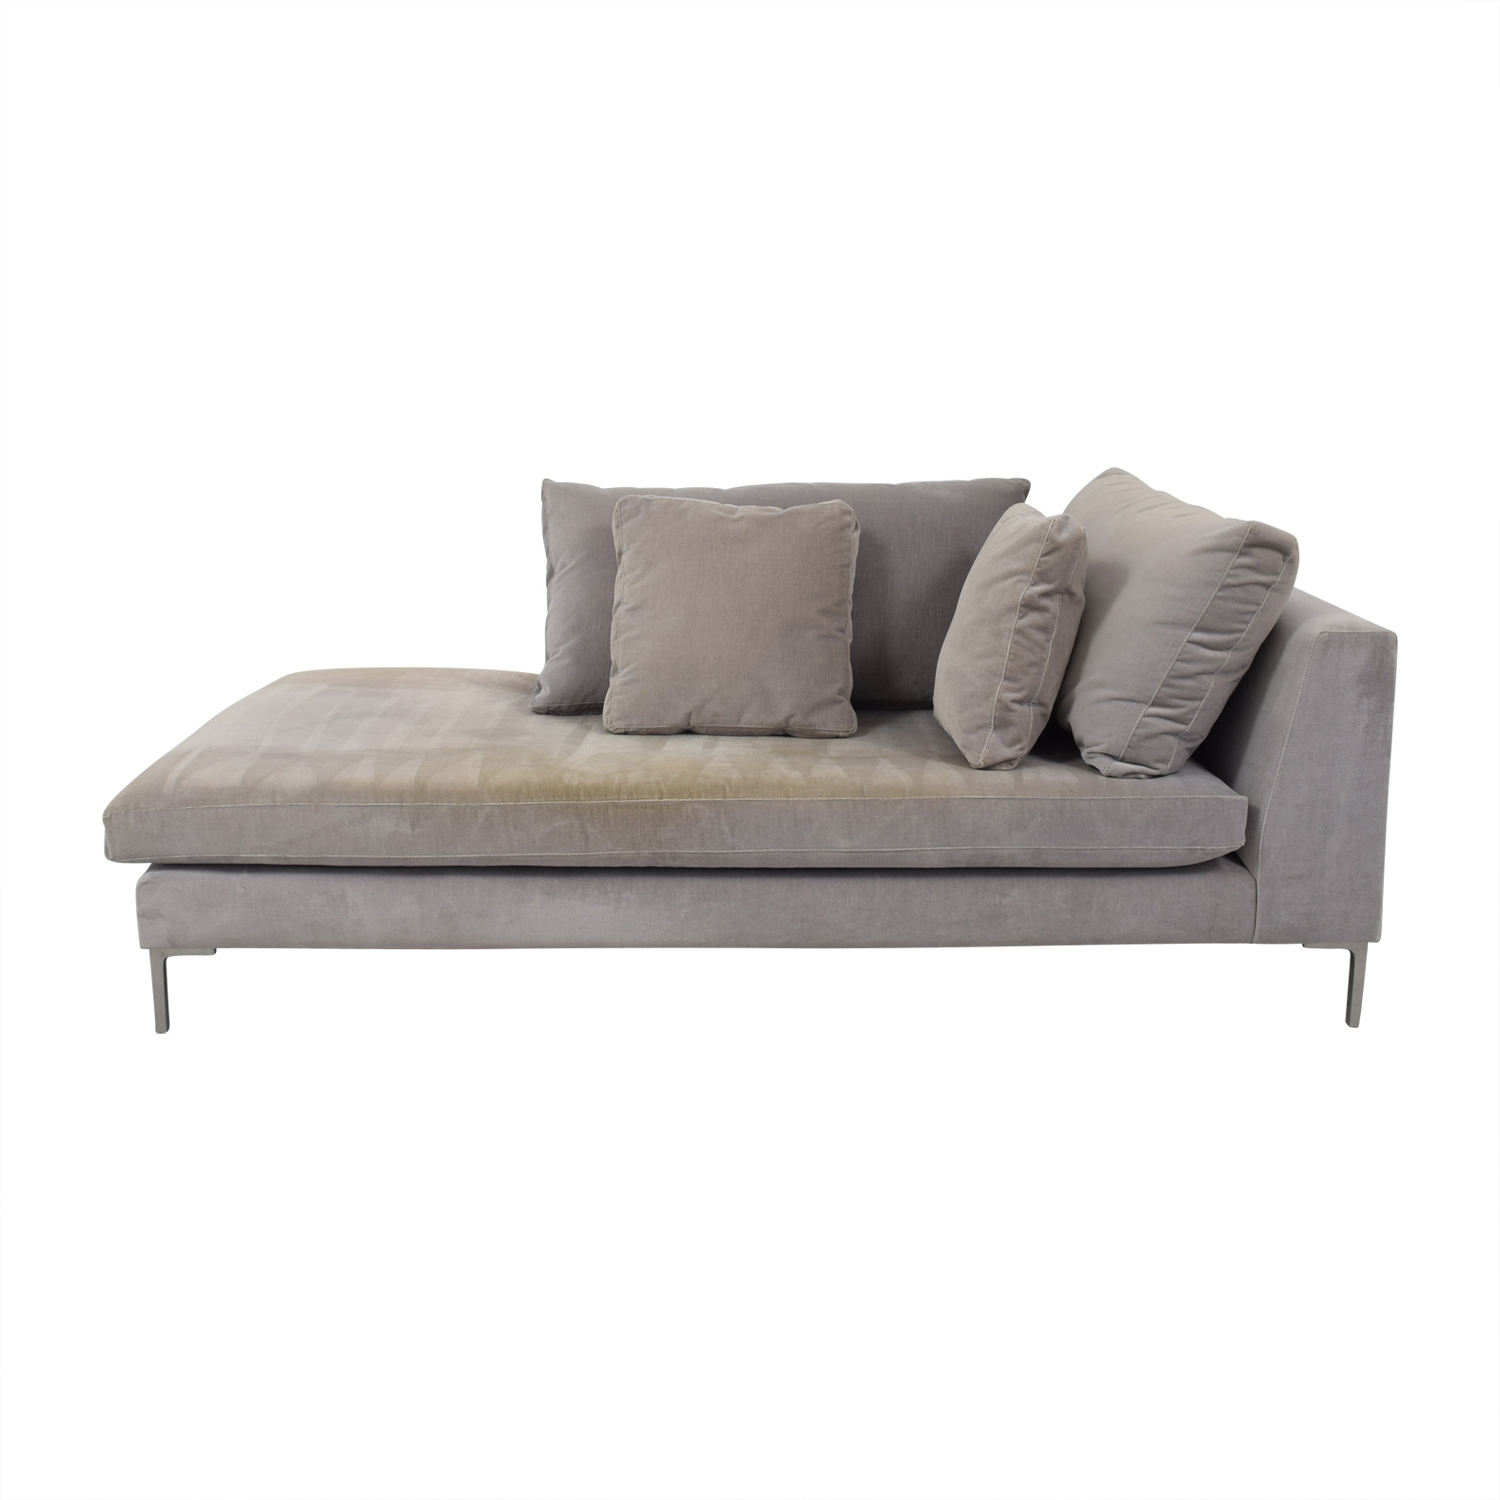 [%87% Off – Abc Carpet And Home Abc Right Arm Velvet Chaise / Sofas Within Favorite Right Arm Chaises|Right Arm Chaises Intended For Most Current 87% Off – Abc Carpet And Home Abc Right Arm Velvet Chaise / Sofas|Famous Right Arm Chaises In 87% Off – Abc Carpet And Home Abc Right Arm Velvet Chaise / Sofas|Popular 87% Off – Abc Carpet And Home Abc Right Arm Velvet Chaise / Sofas Within Right Arm Chaises%] (View 1 of 15)